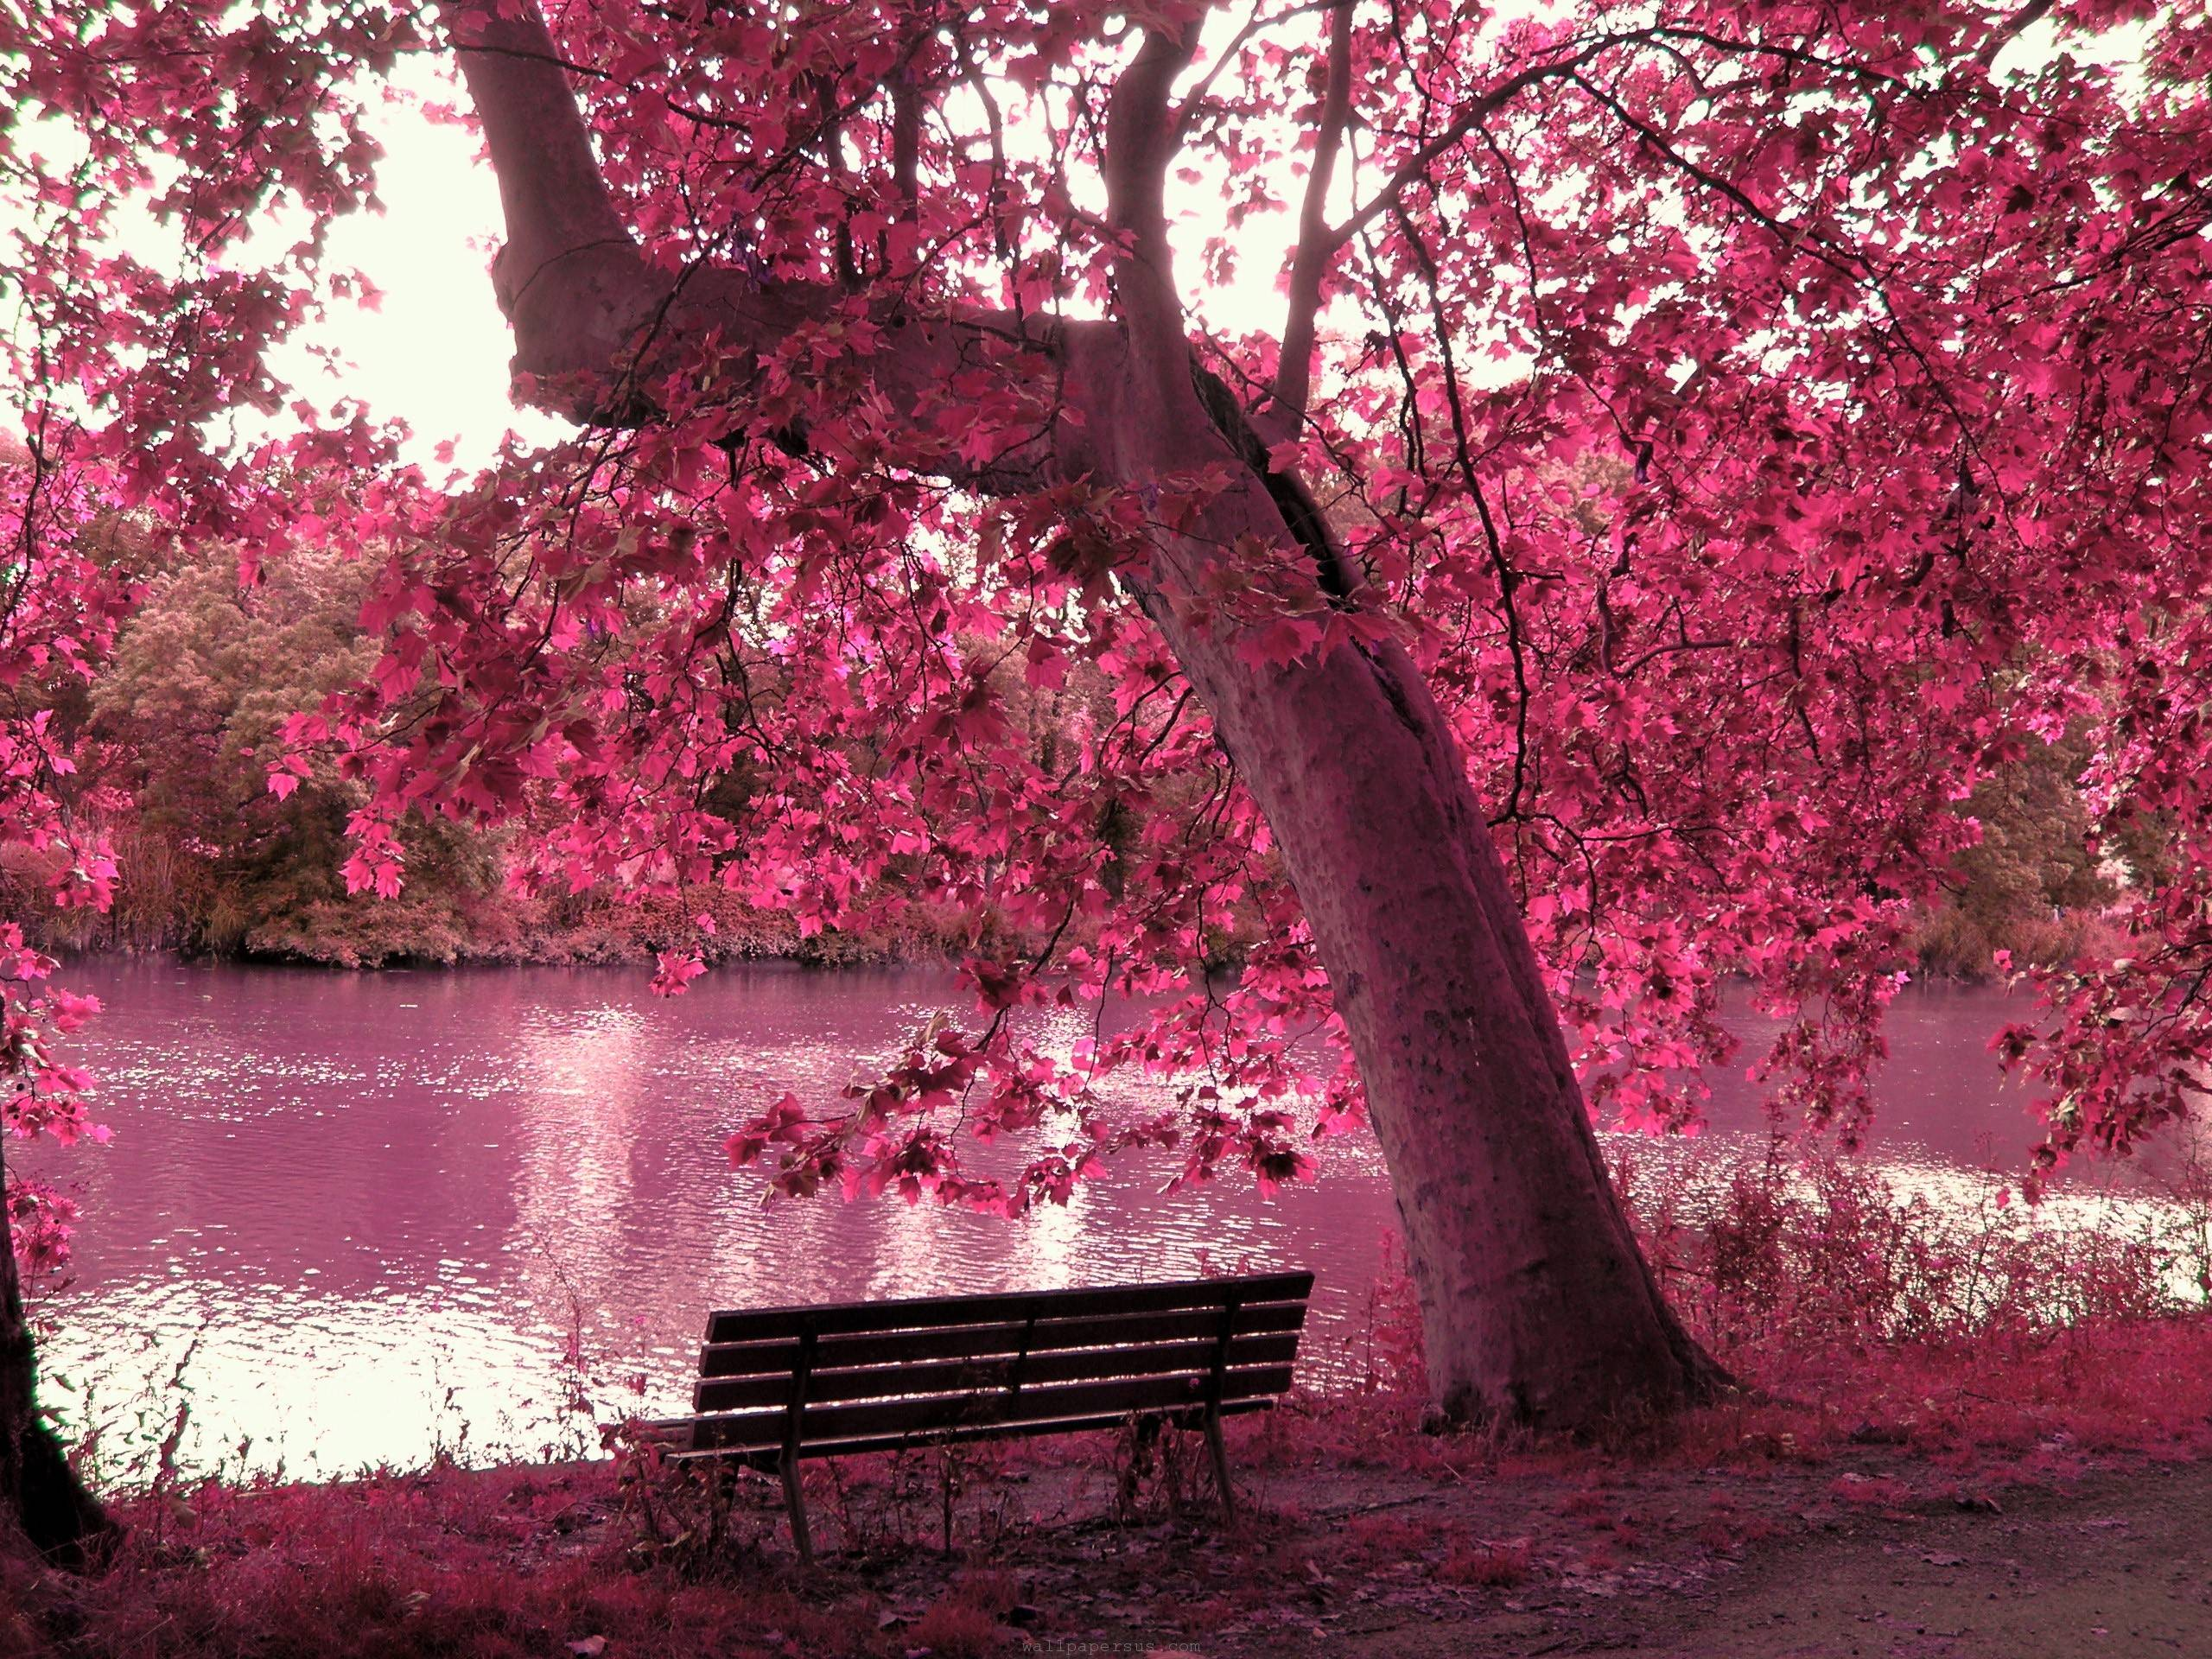 Pink Nature Wallpapers 2560x1920